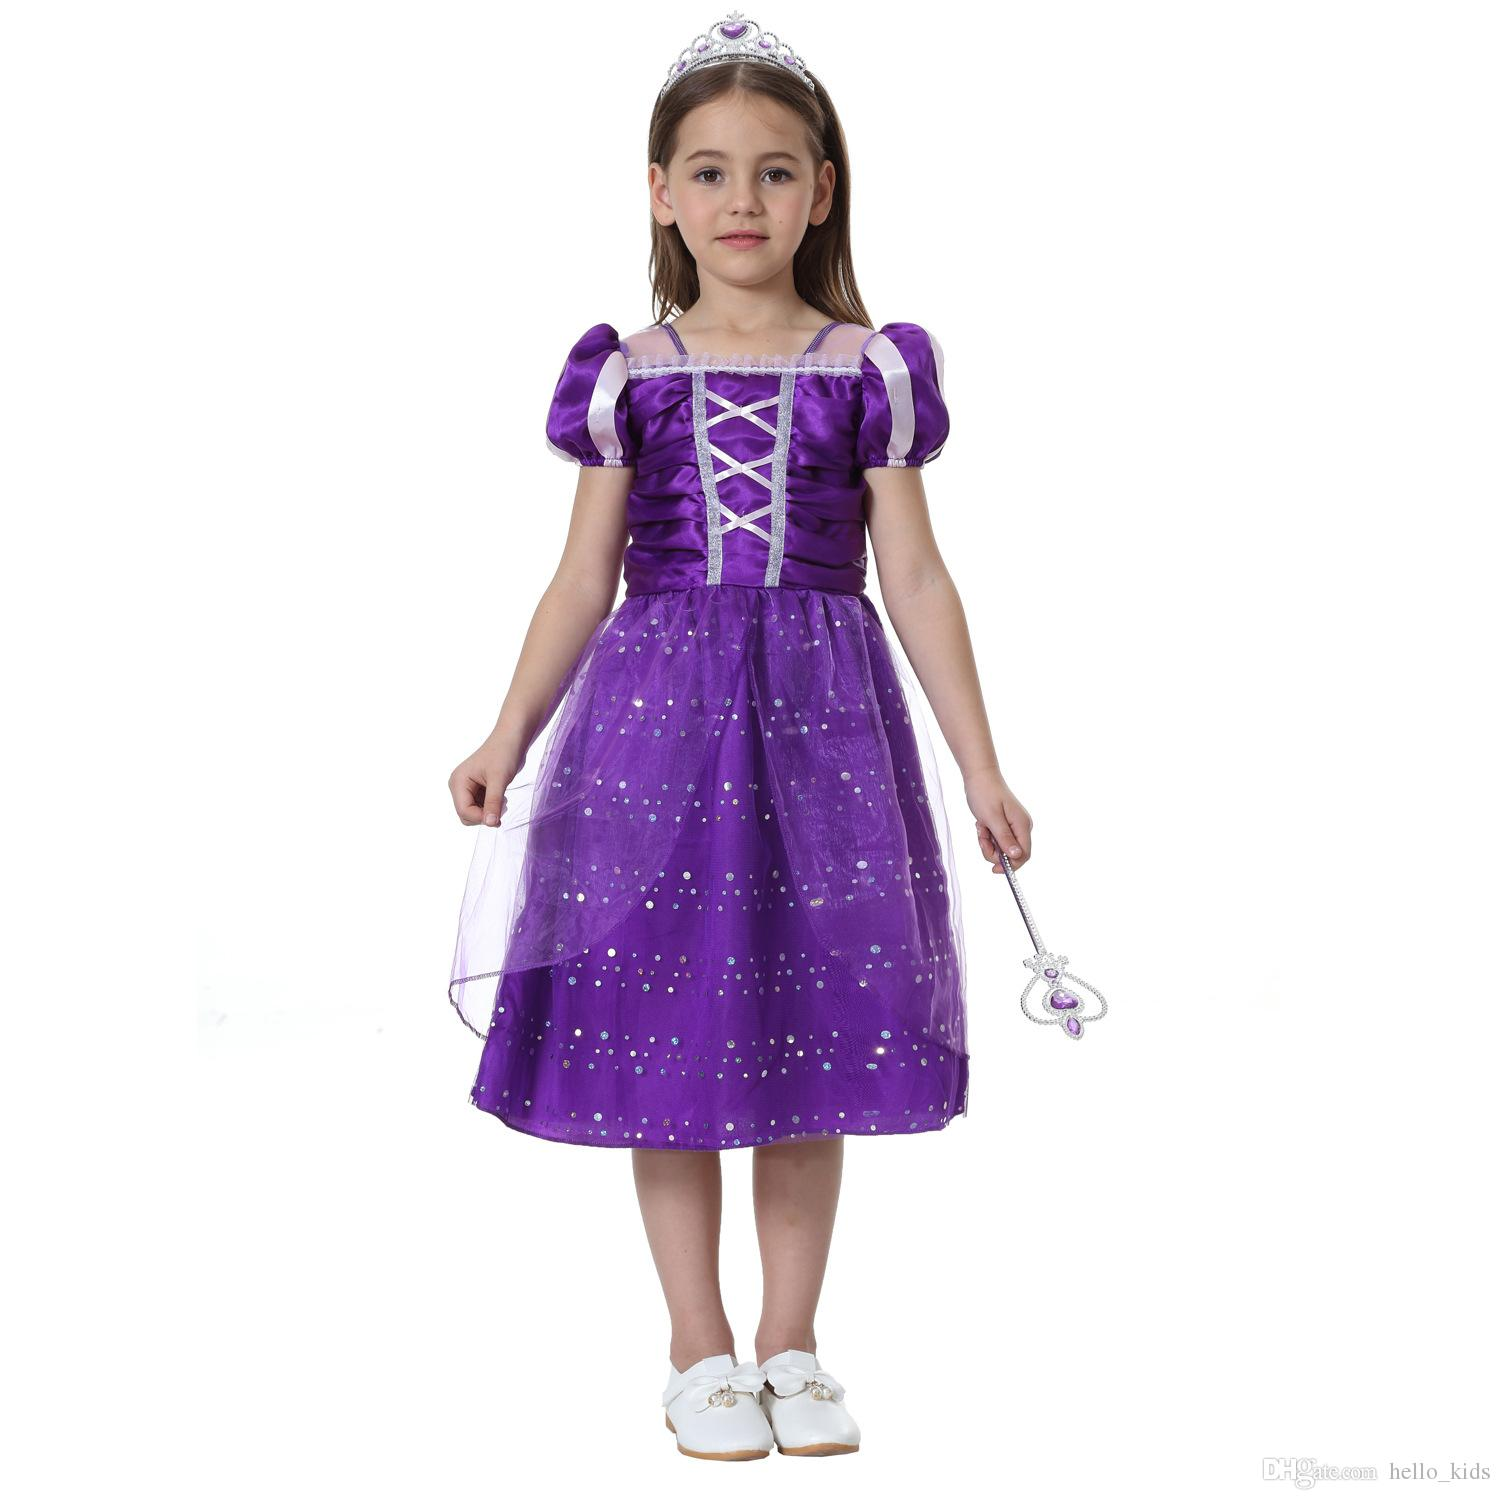 0d5936cddf25 Valentine's Day Special Occasion Dresses & Clothing ... - Macy's